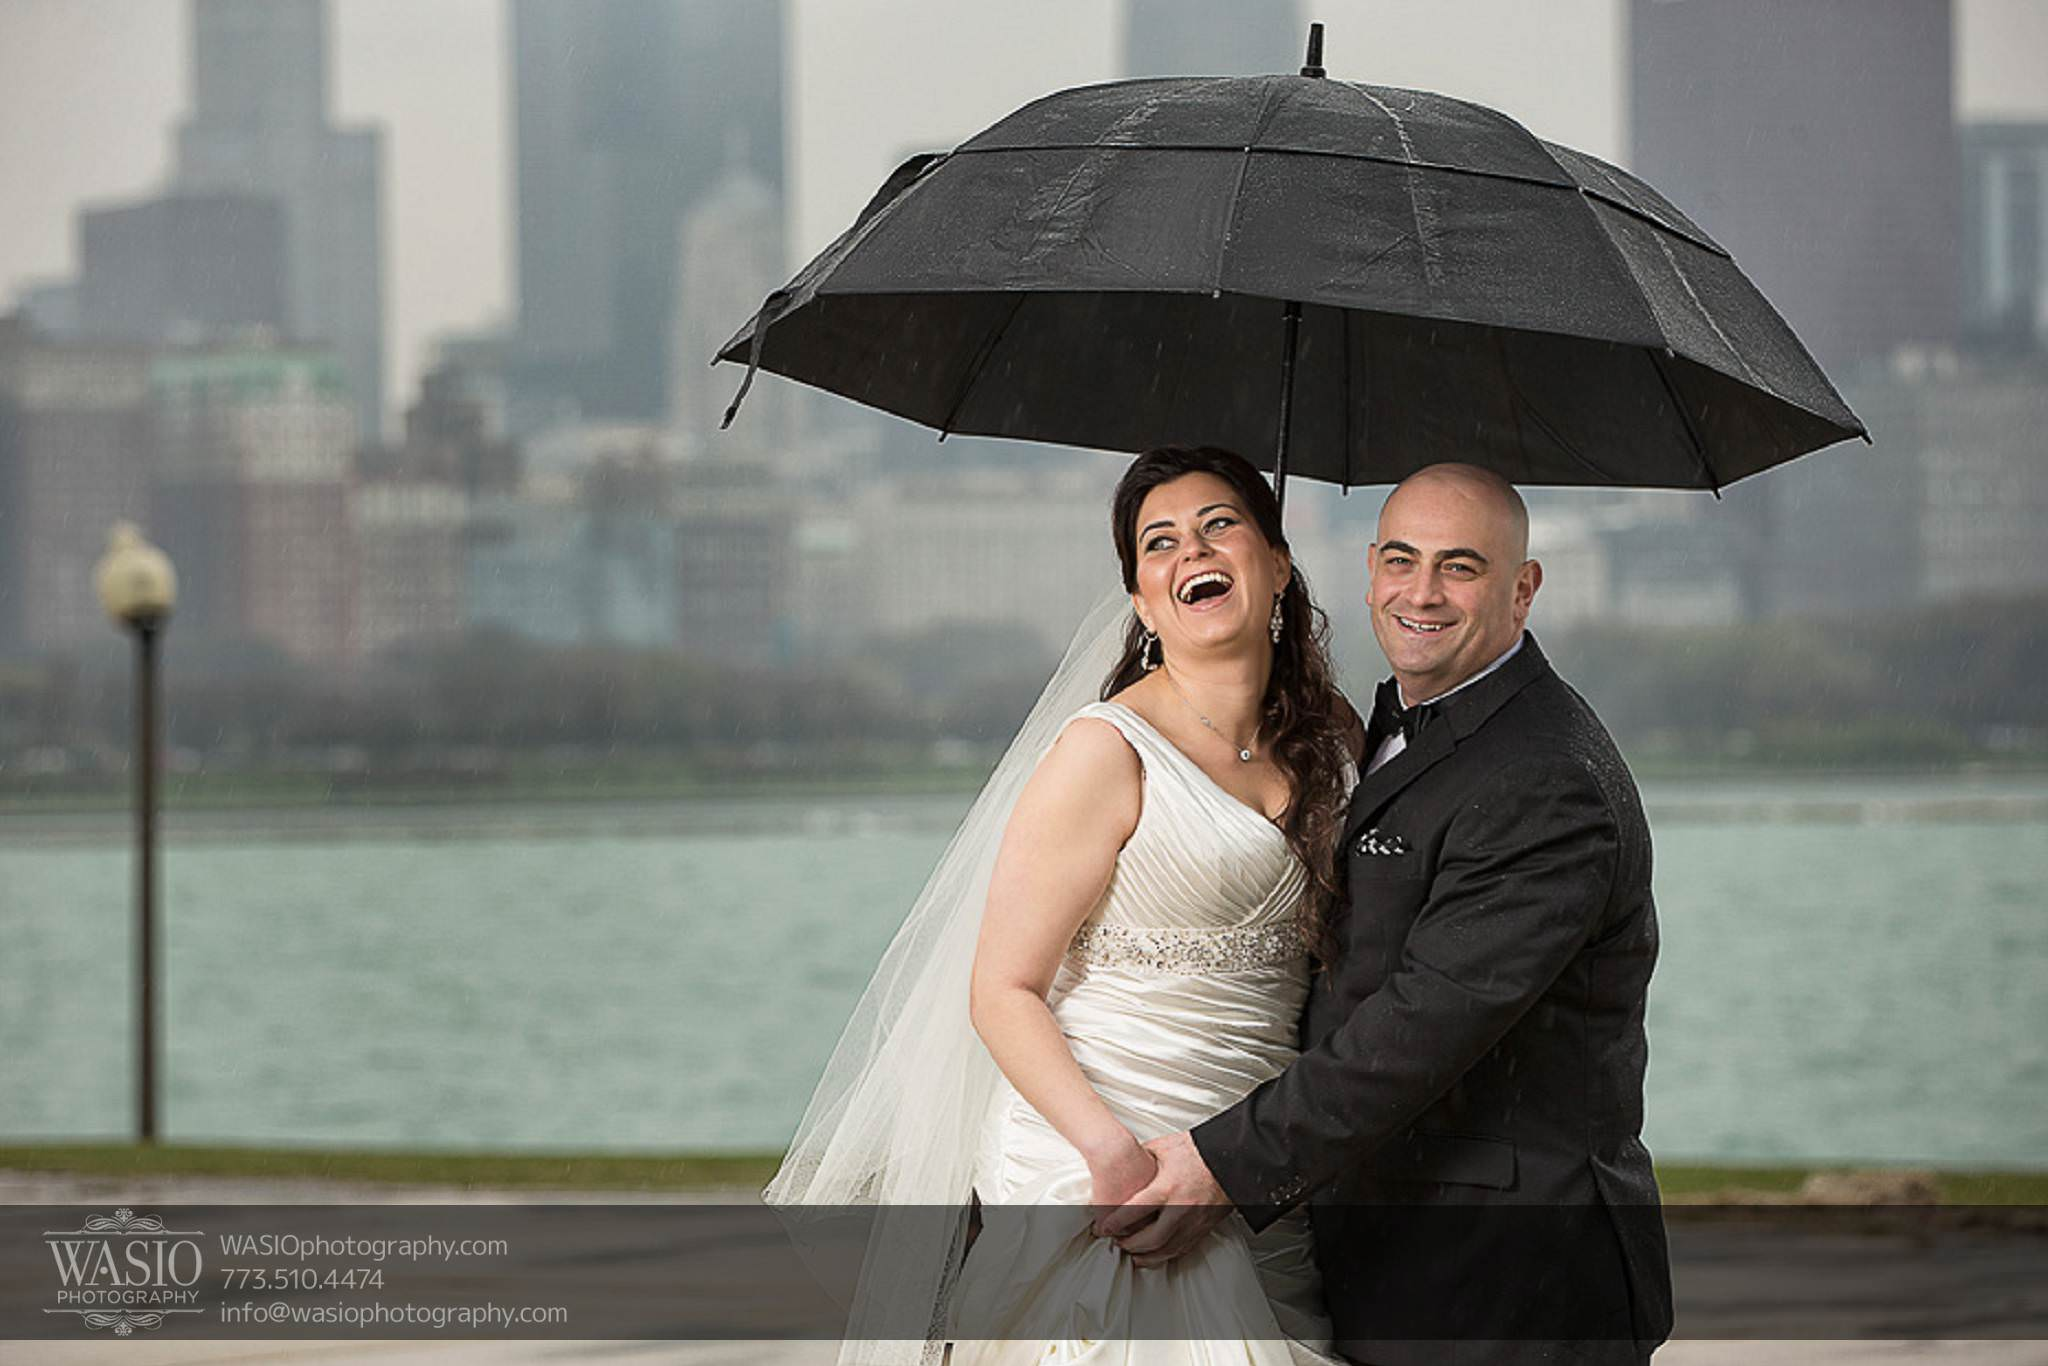 Chicago-wedding-photos-rain-umbrella-fun-skyline-happy-056 Chicago Wedding Photos - Svetlana + Yuriy